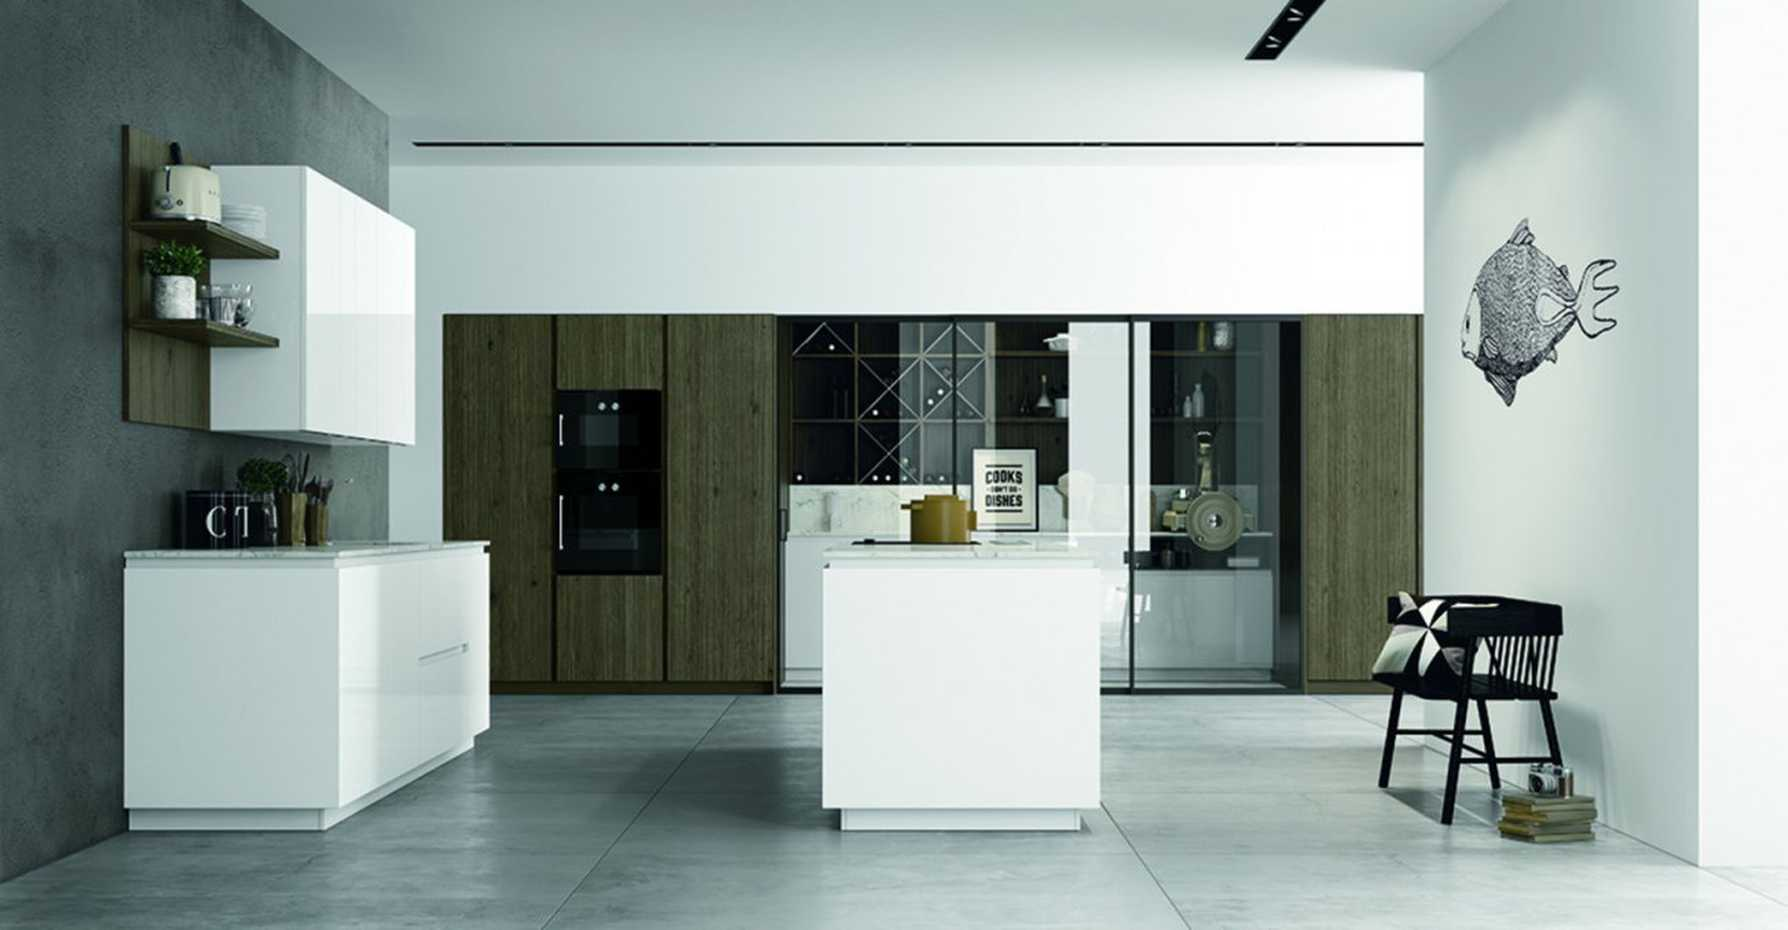 Materia by Doimo Cucine product image 7